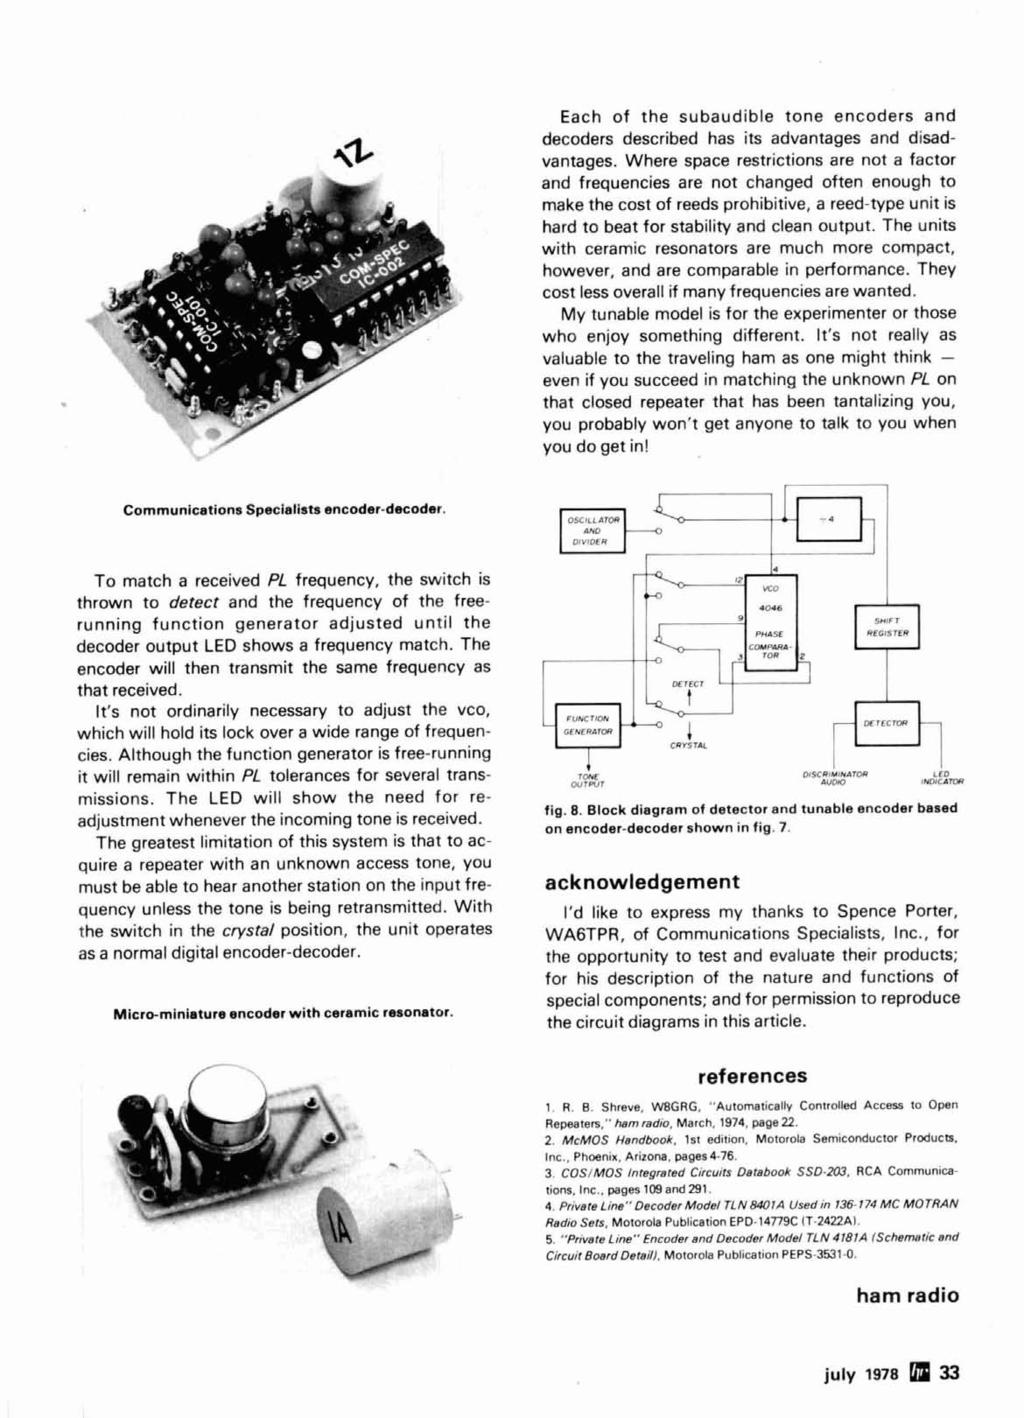 Radio Ham Magazine July 1978 J Antenna 74 Variable Power Supply 36 Lm1800 Fm Stereo Demodulator Circuit Diagram Each Of The Subaudible Tone Encoders And Decoders Described Has Its Advantages Disadvantages